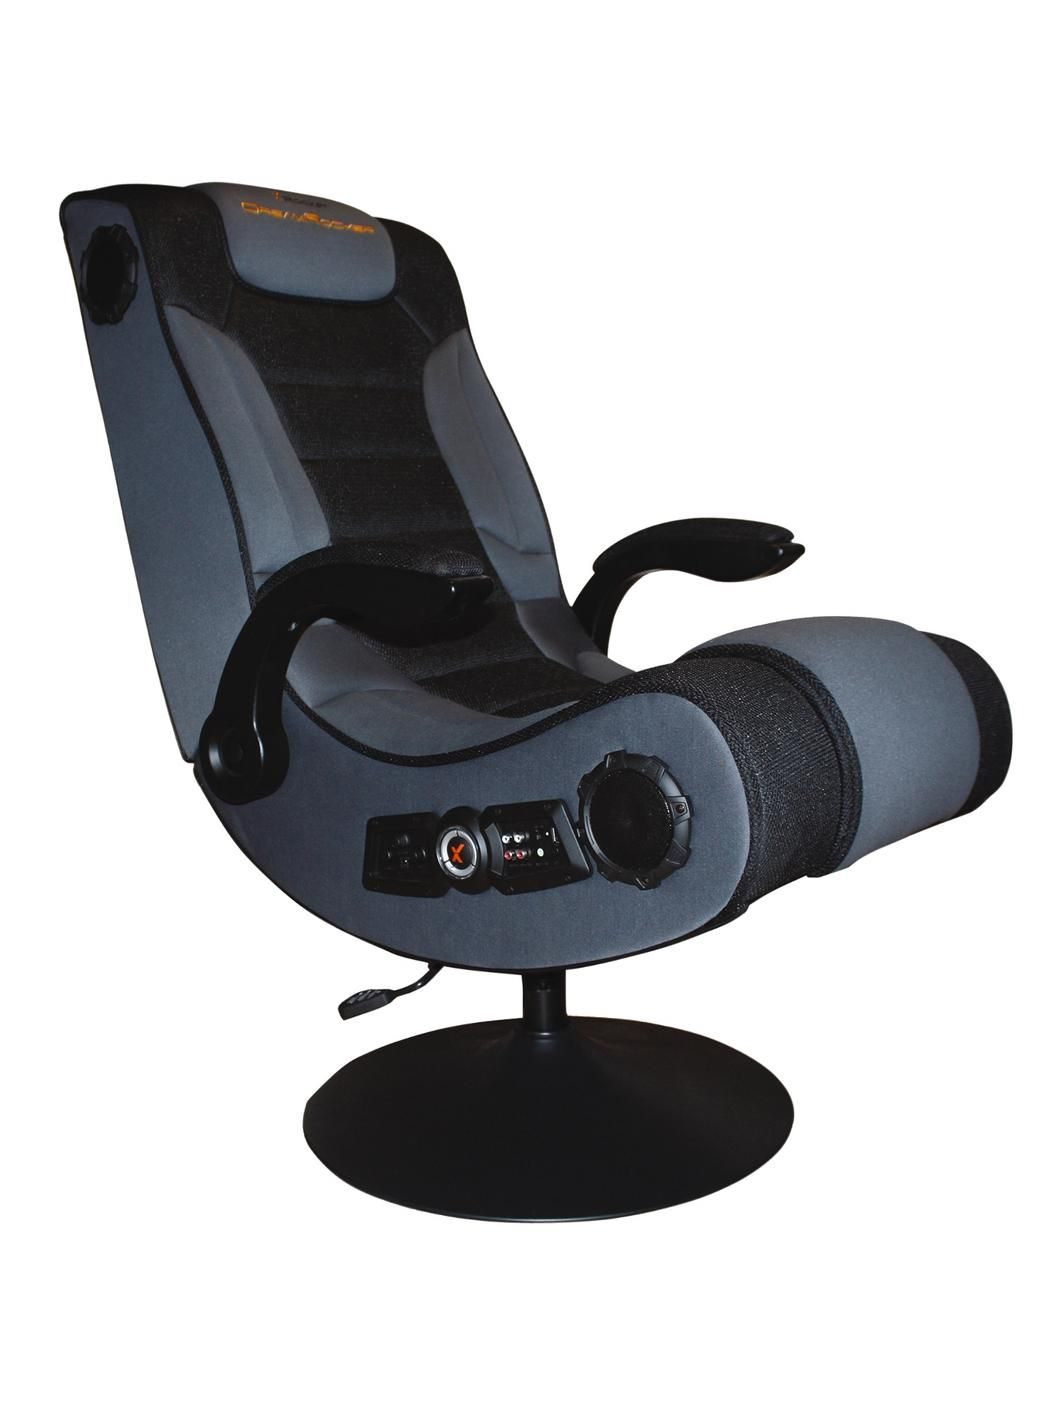 Ordinaire The X Dream Rocker Ultra 4.1 Bluetooth® Gaming Chair Oozes Class And  Quality Providing Gamers With Comfort And Superb 4.1 Surround Sound.